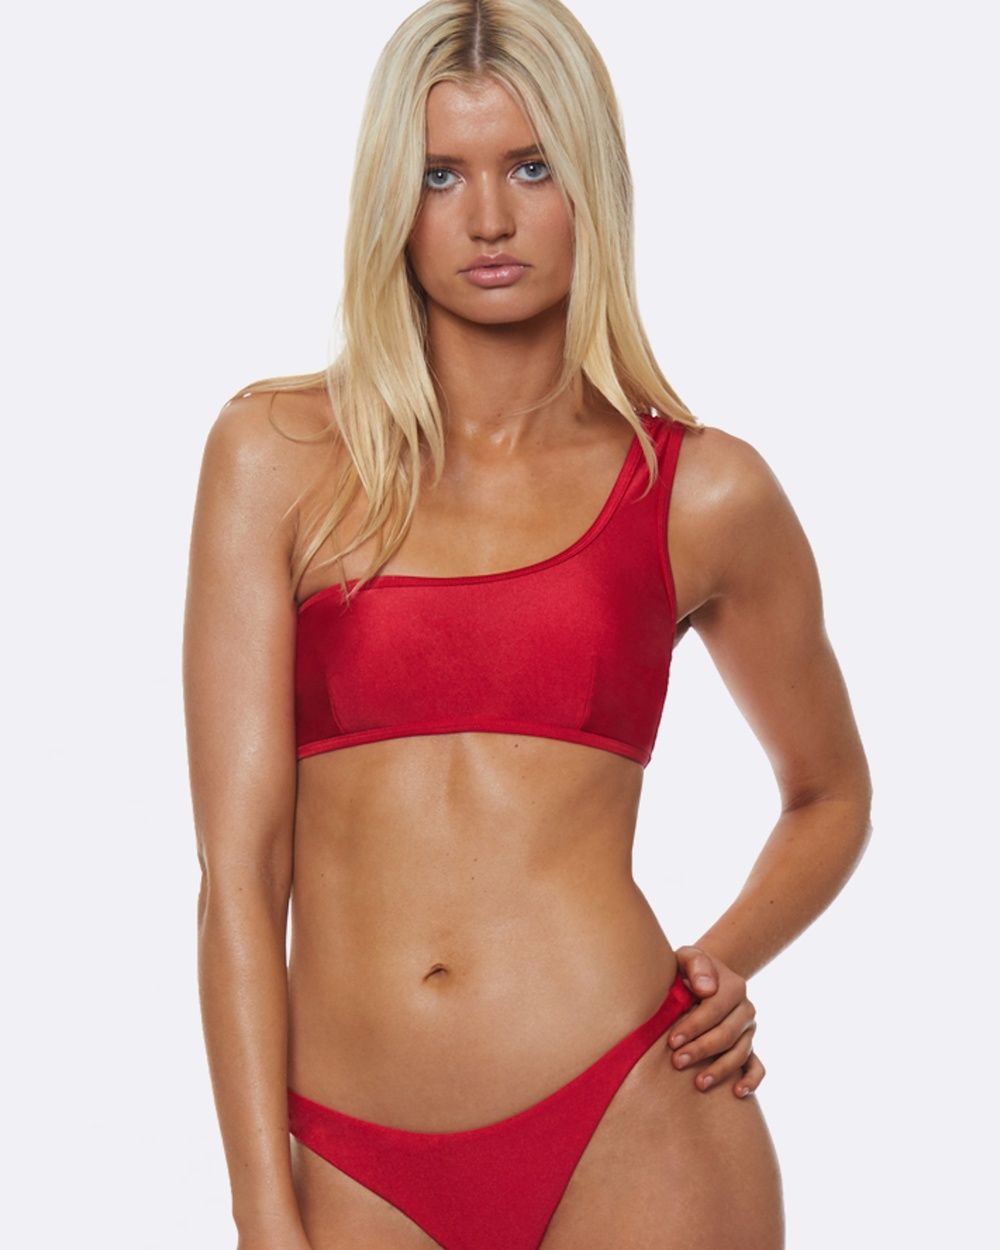 L'urv One Shoulder Bikini Top Bikini Set Red One Shoulder Bikini Top